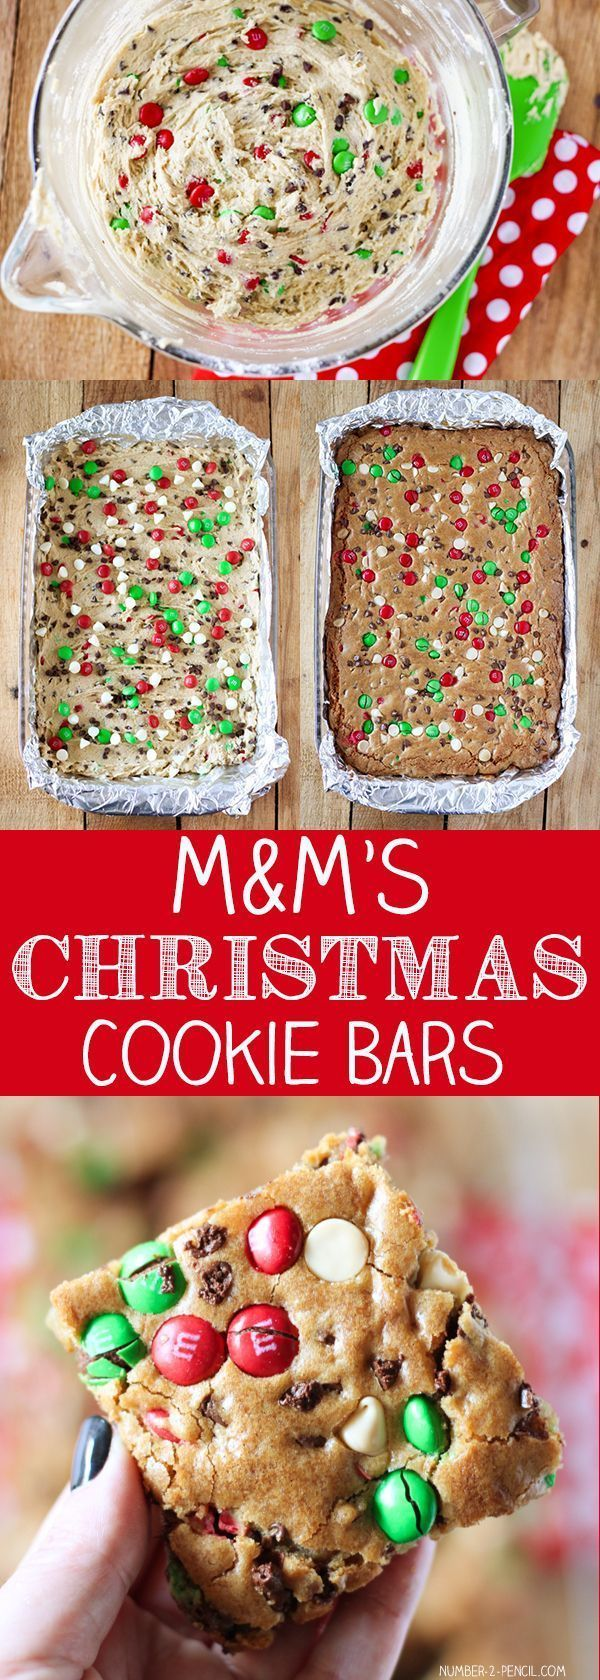 153 best holiday christmas food images on pinterest christmas mms christmas cookie bars forumfinder Images